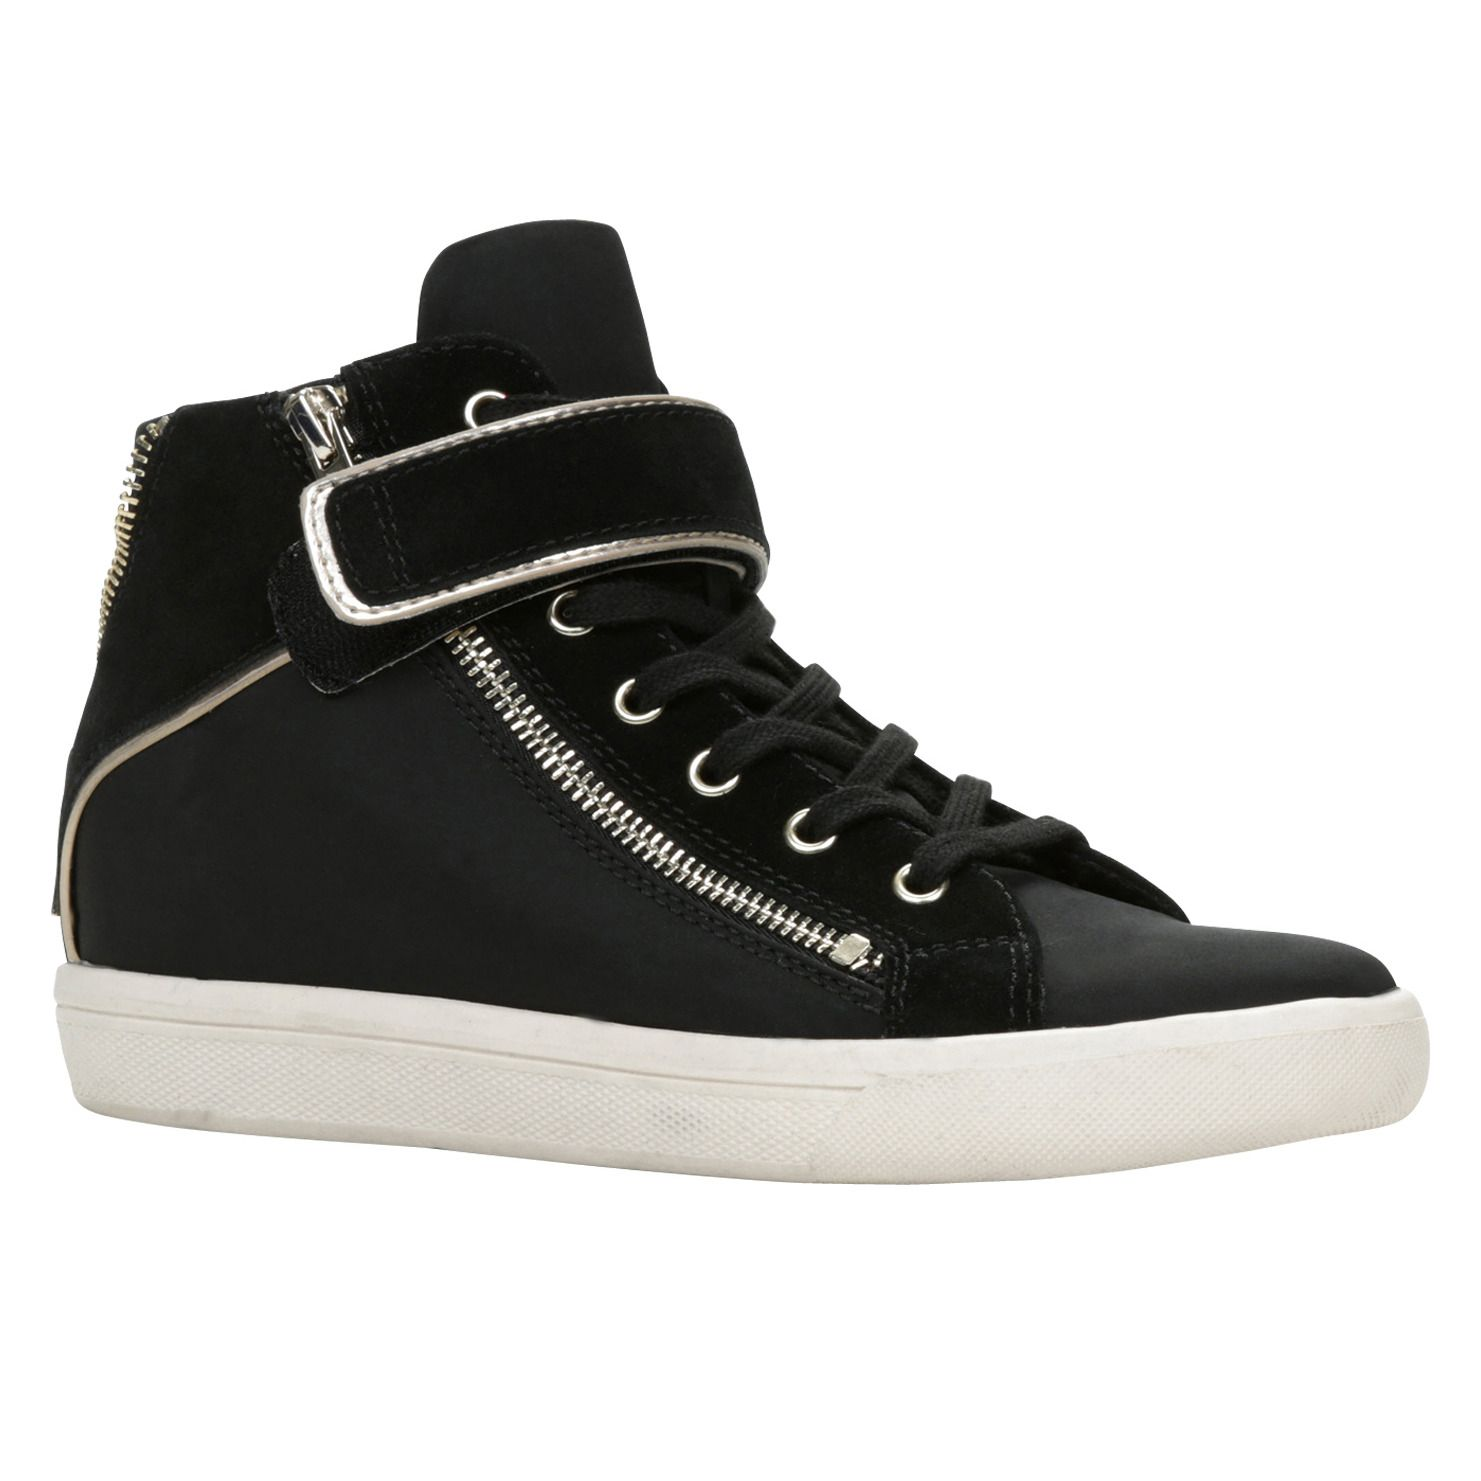 3620f150f457e PICCININNI - women's sneakers shoes for sale at ALDO Shoes. High top ...